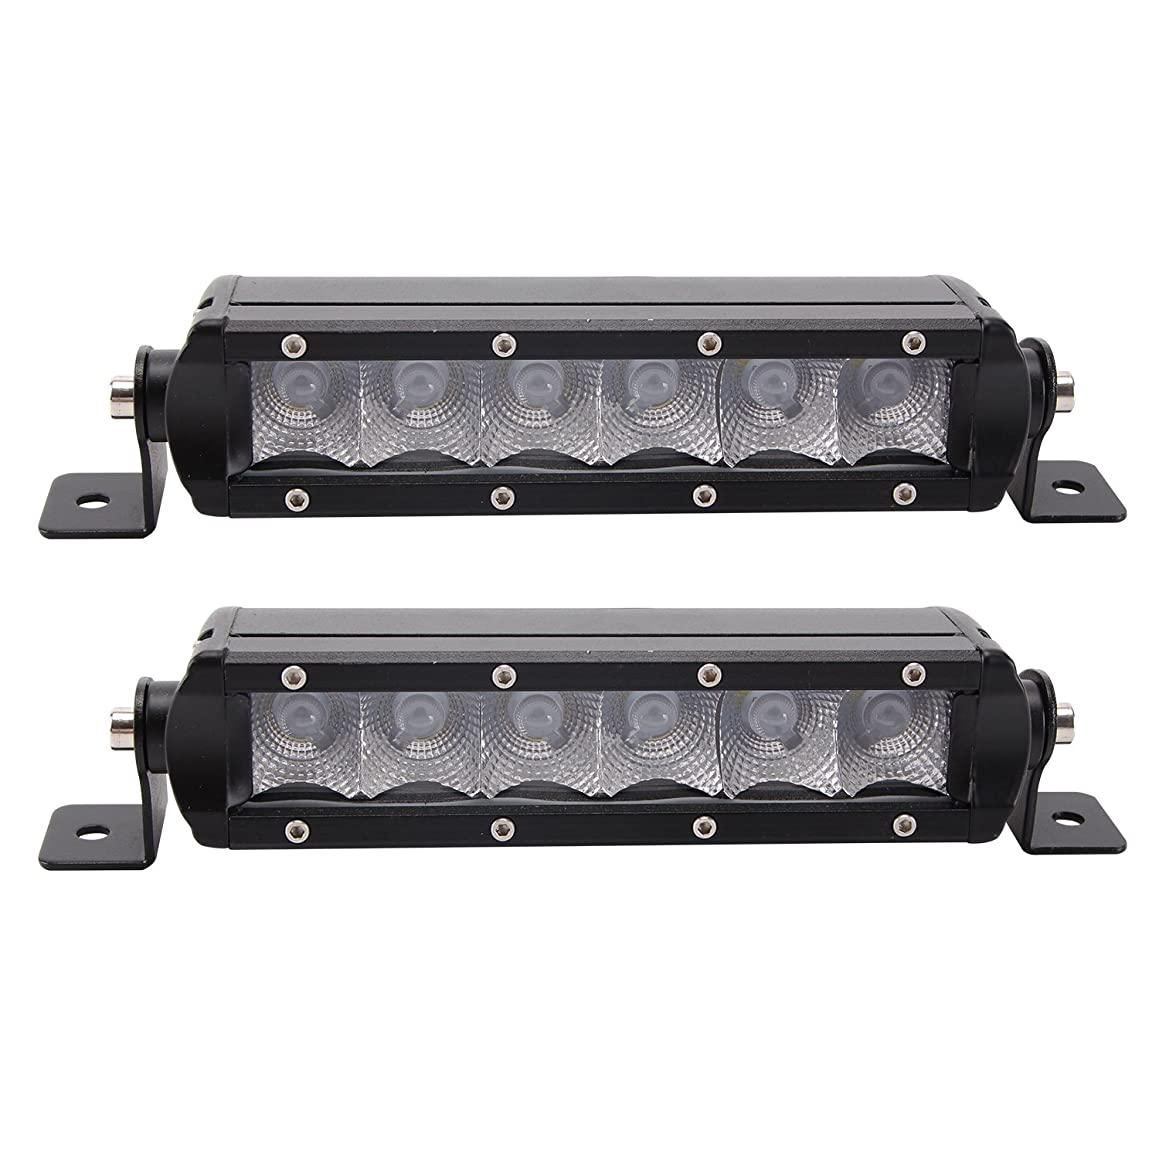 LED Light Bar, Northpole Light 2x 7